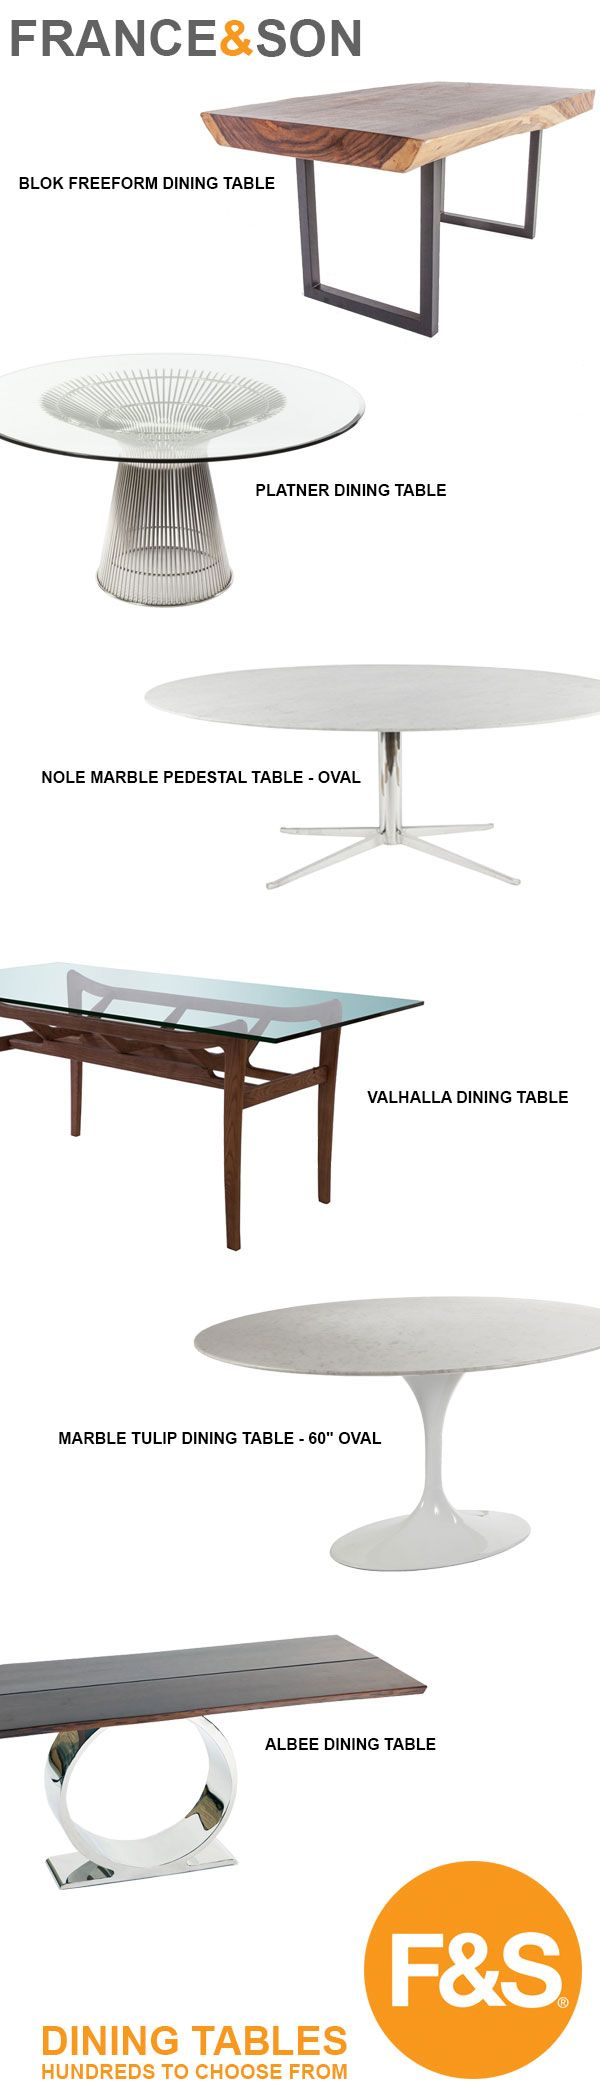 France & Son Dining Tables - hundreds to choose from! | breakfast ...